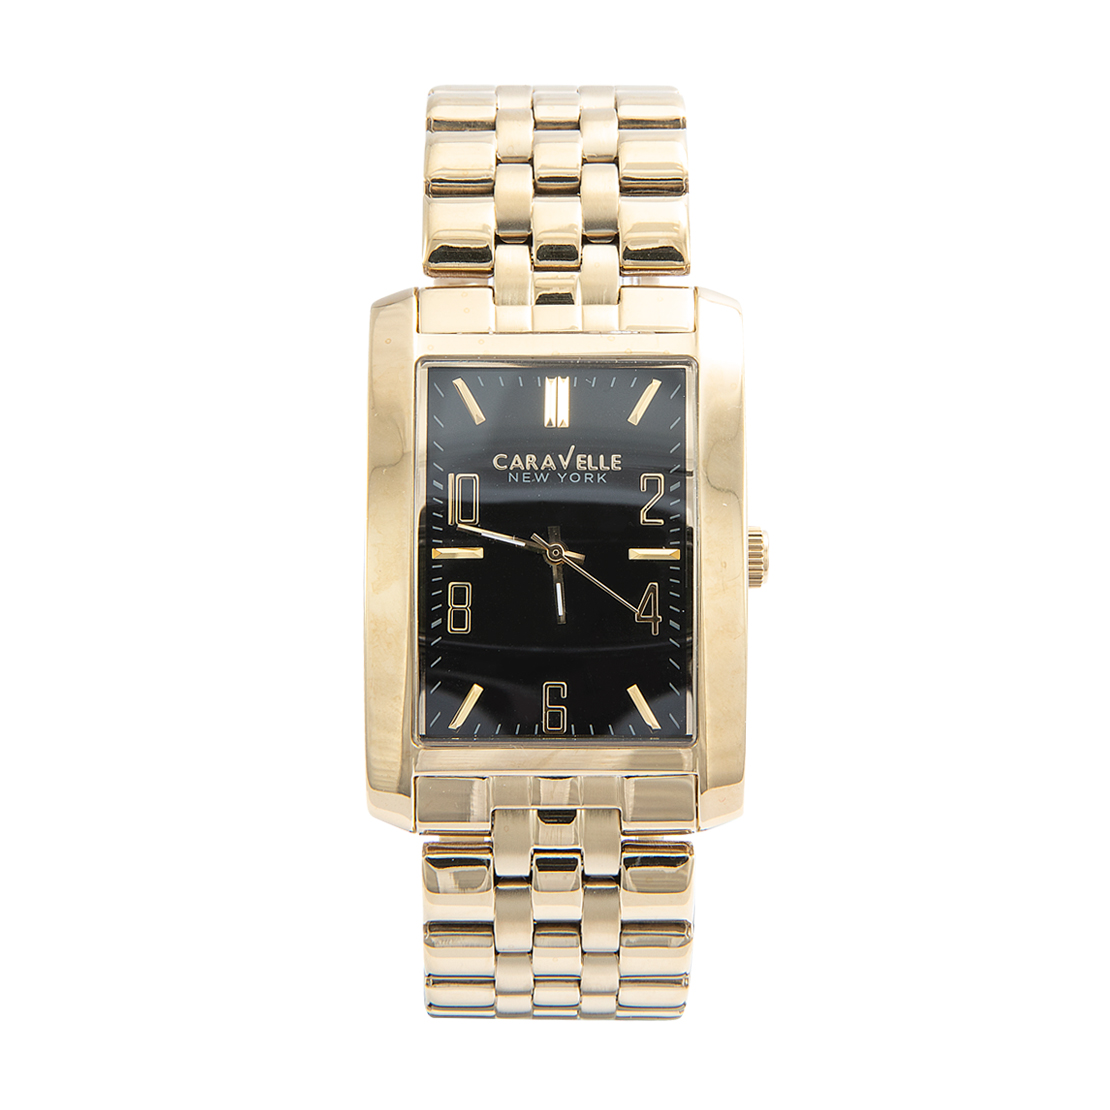 Caravelle Gold and Steel Watch